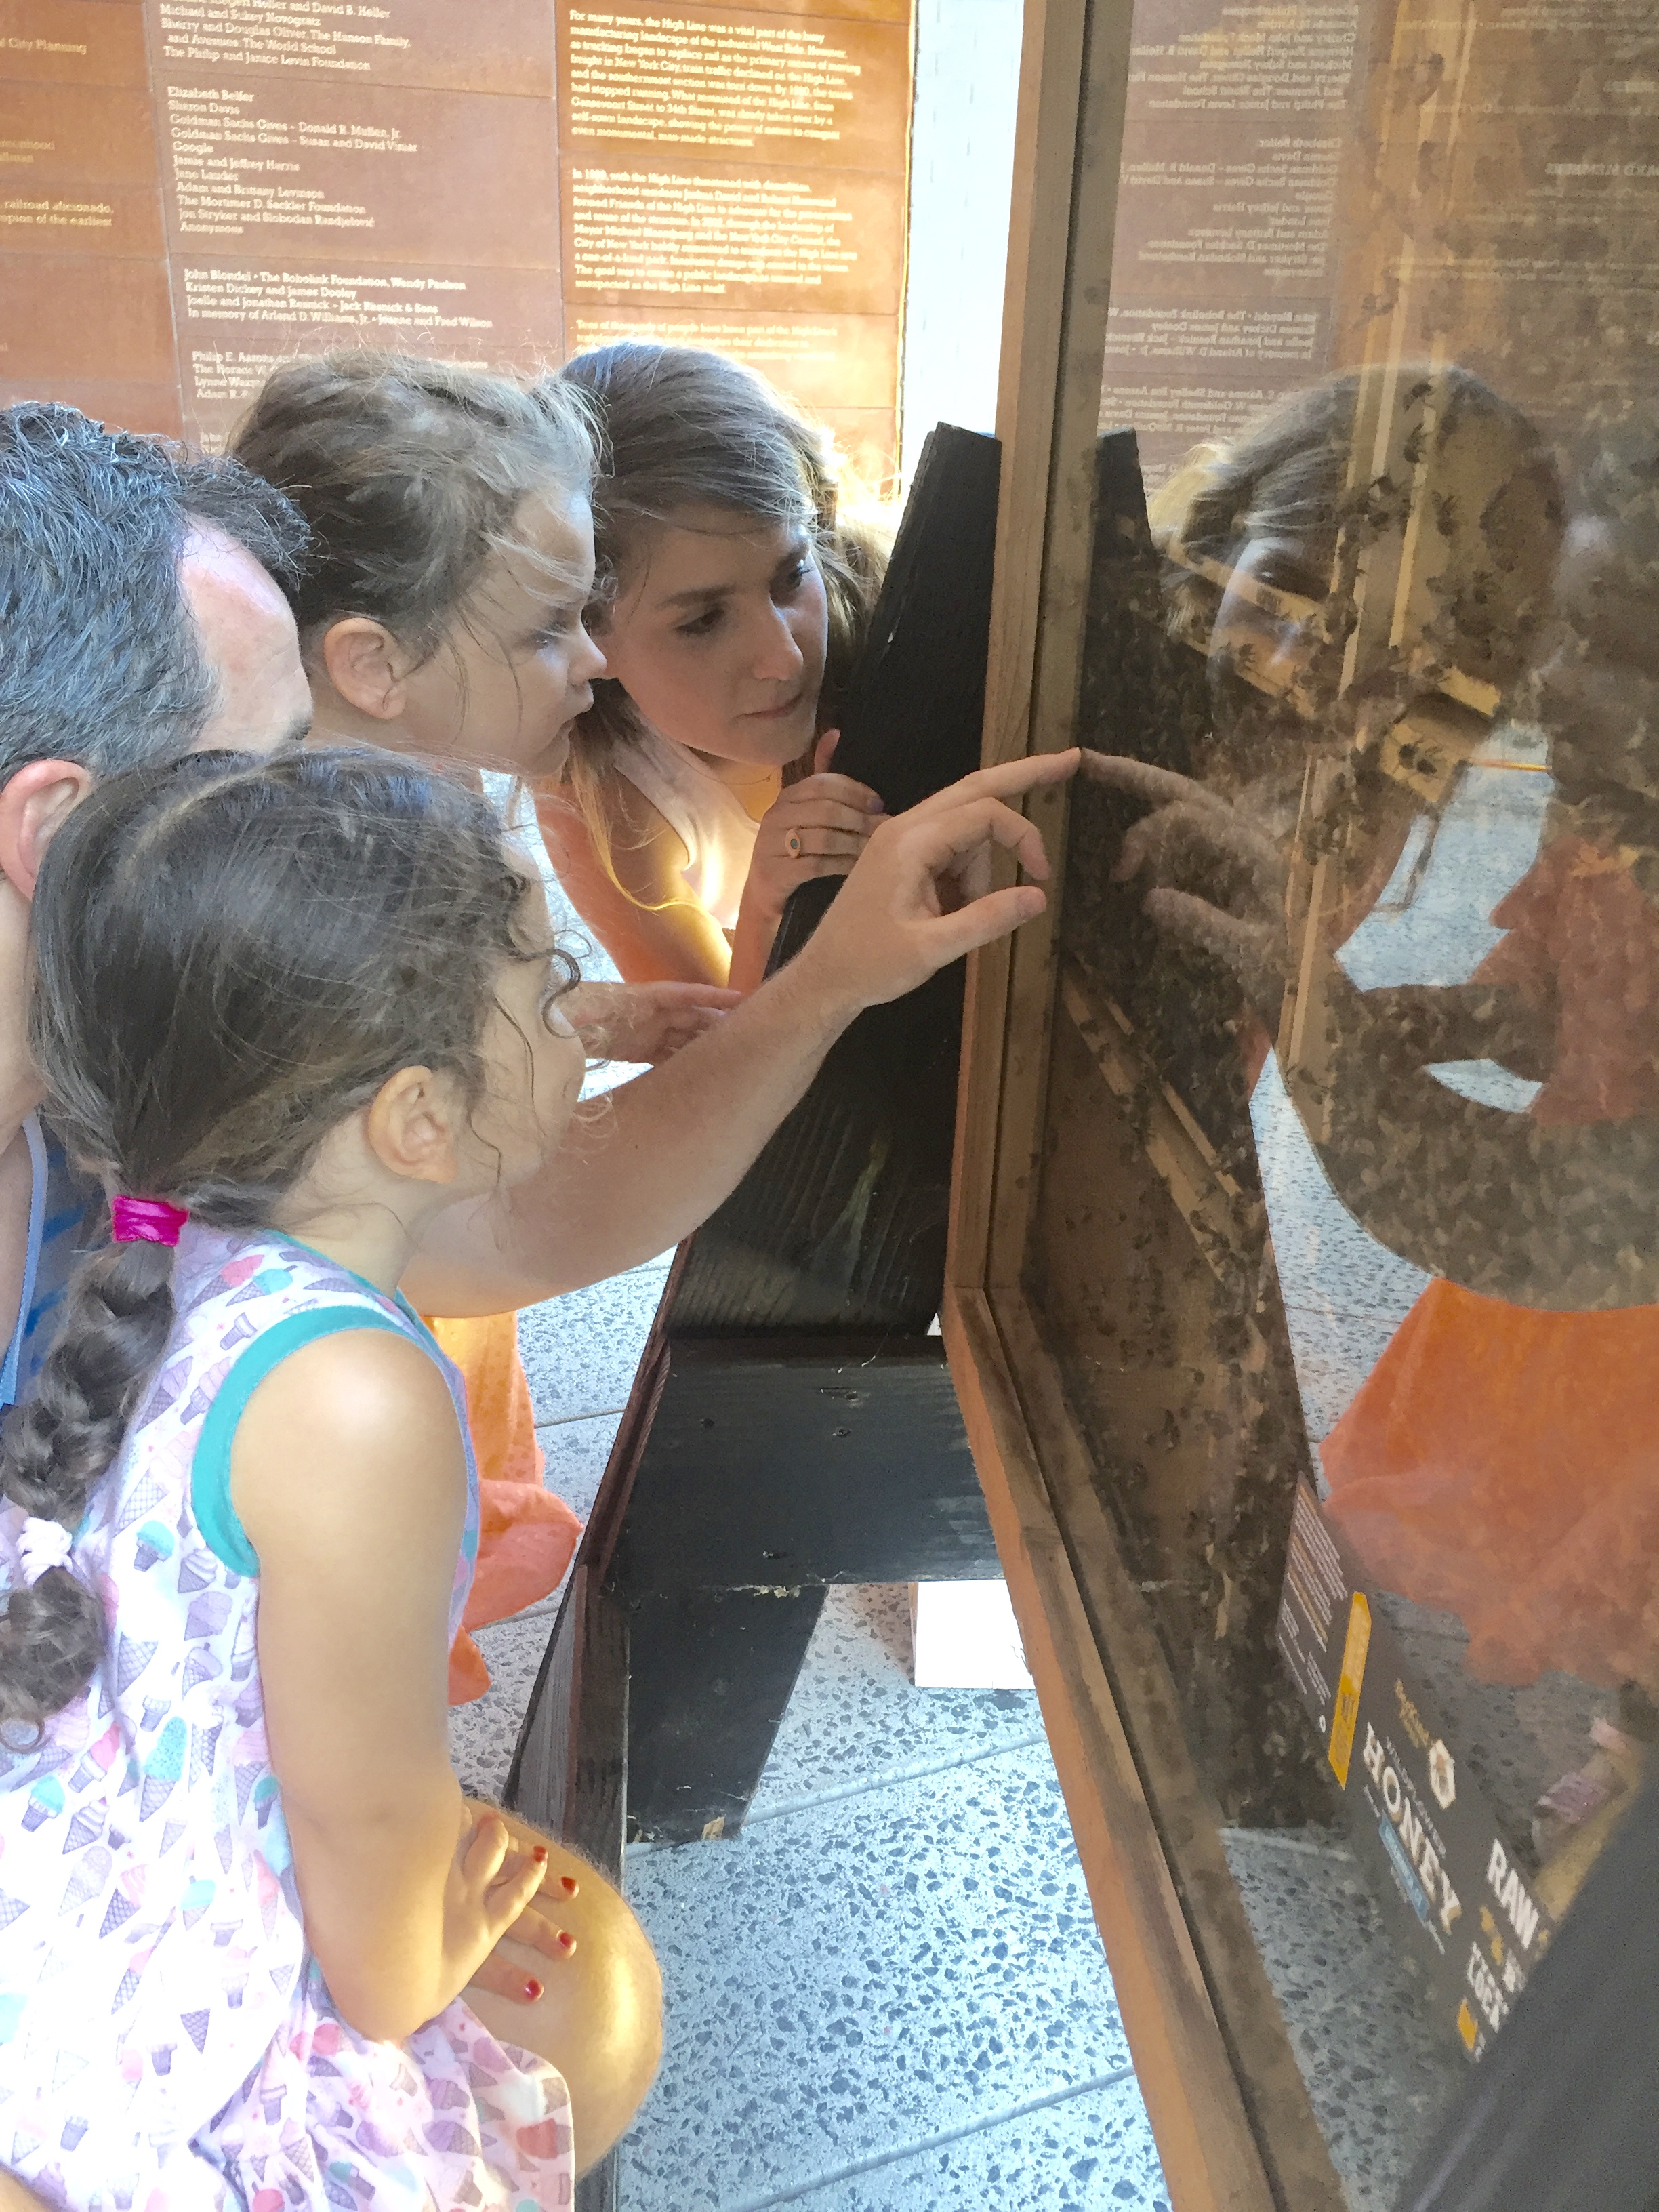 A view through the safety glass of our 10 frame observation hive engages the attention of curious minds.  NYC Beekeeper, Billie, points out the various castes of bees inside the glass and explains their role in this eusocial colony that consists of a 90% female population.